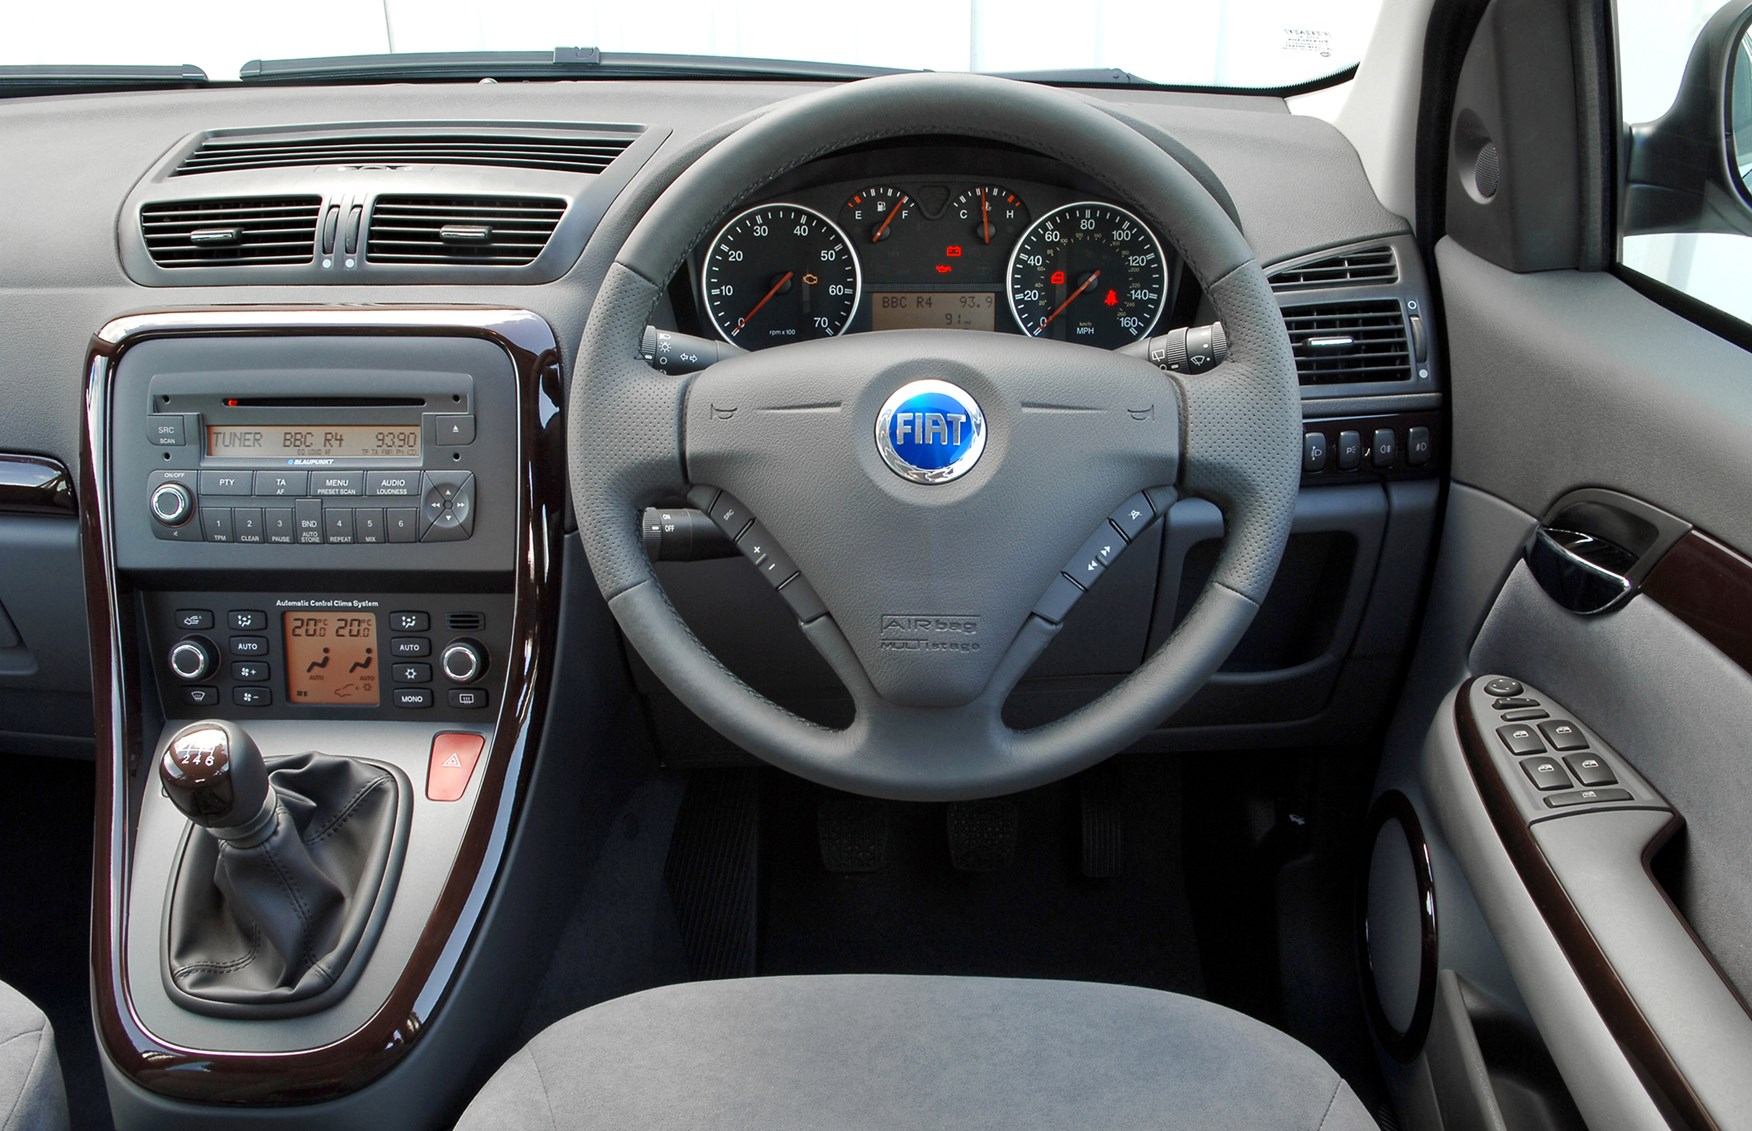 Fiat Croma Hatchback 2005 2007 Features Equipment And